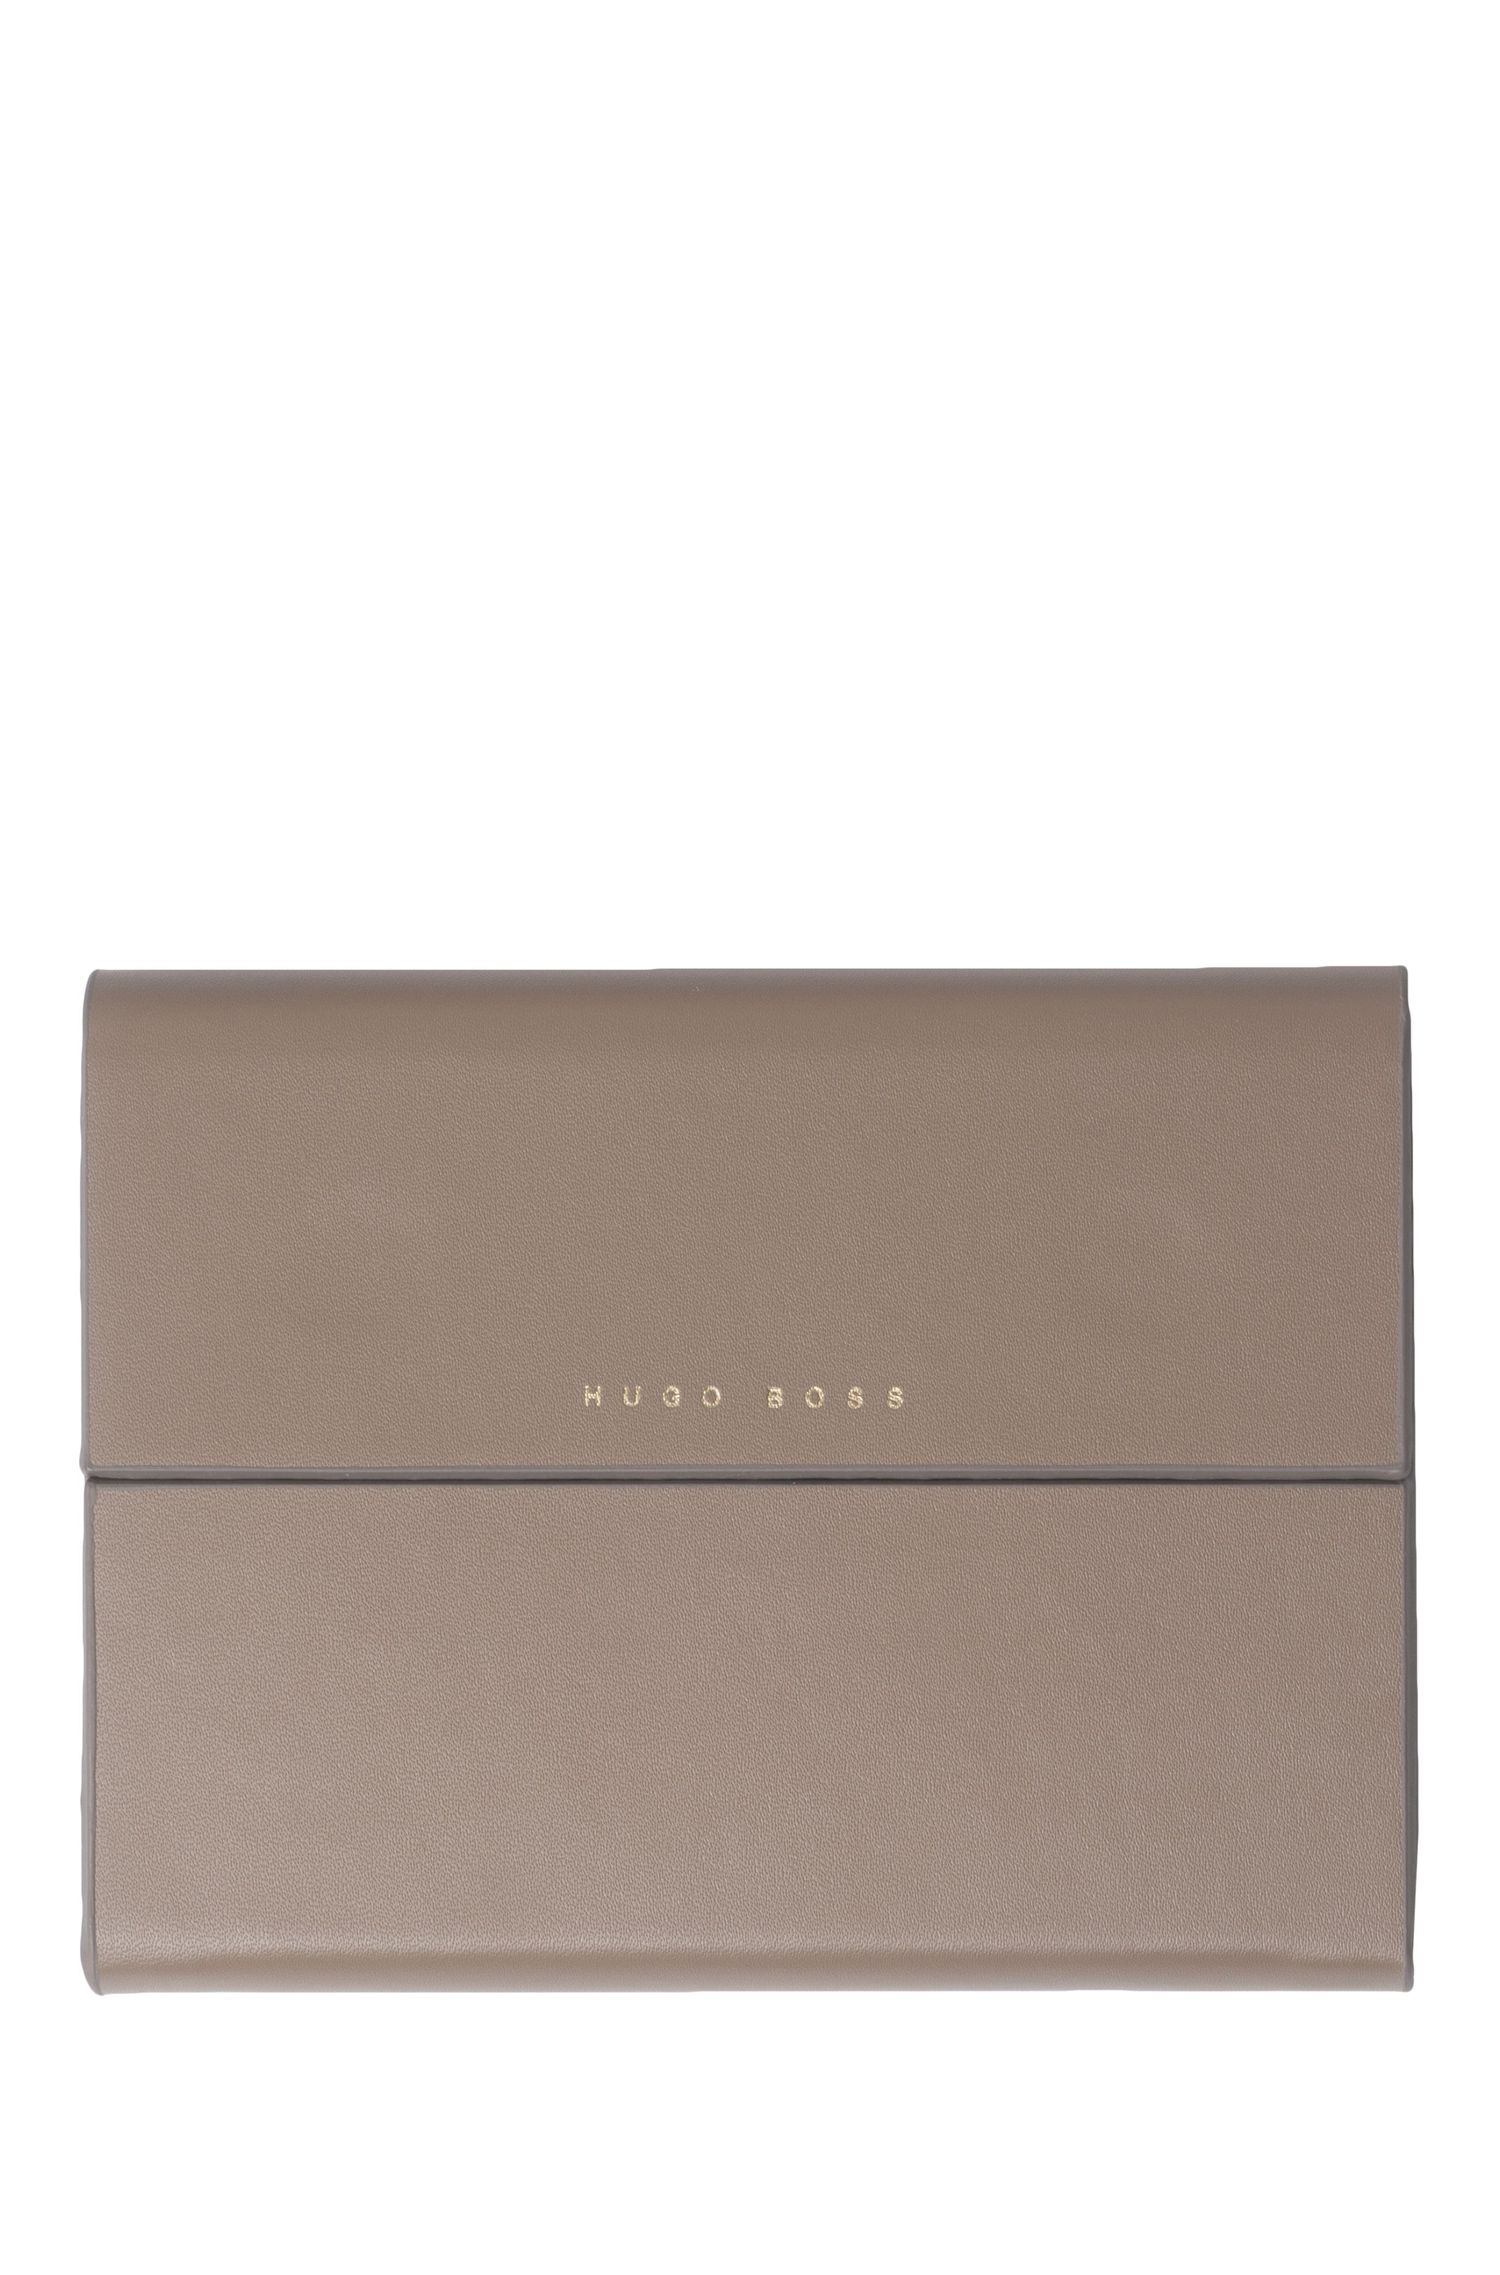 Notepad with grained-leather-effect case